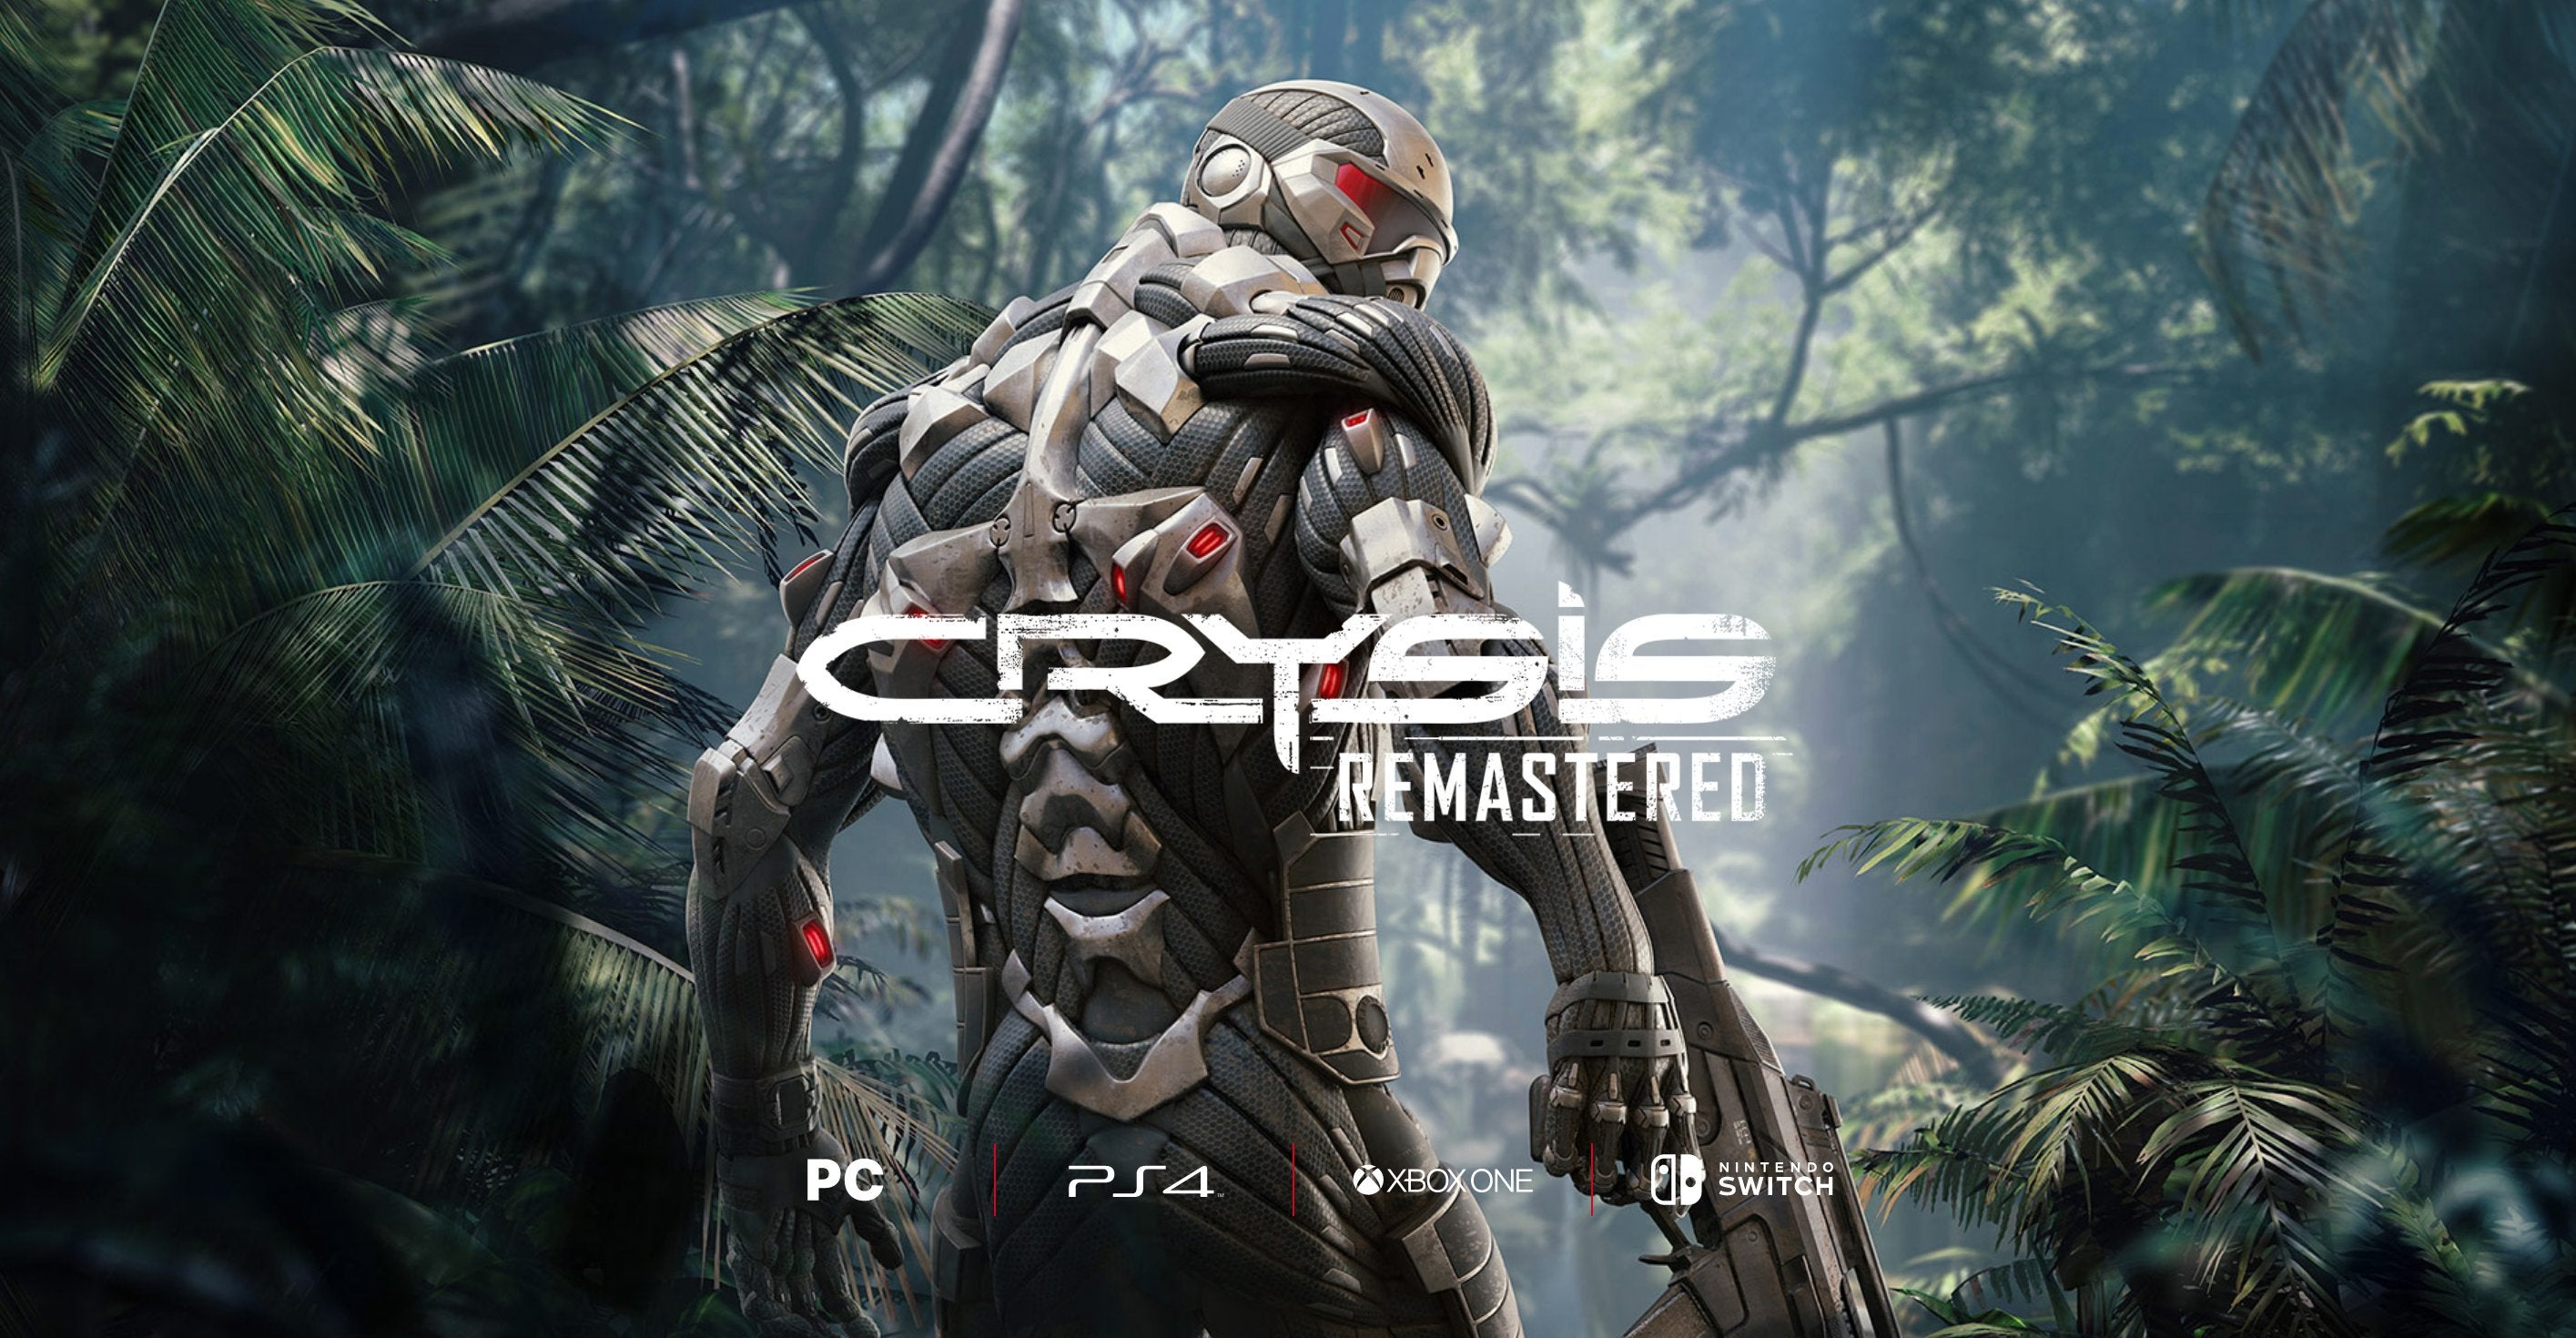 Crysis Remaster Appears To Be Coming To Major Platforms, Including Switch